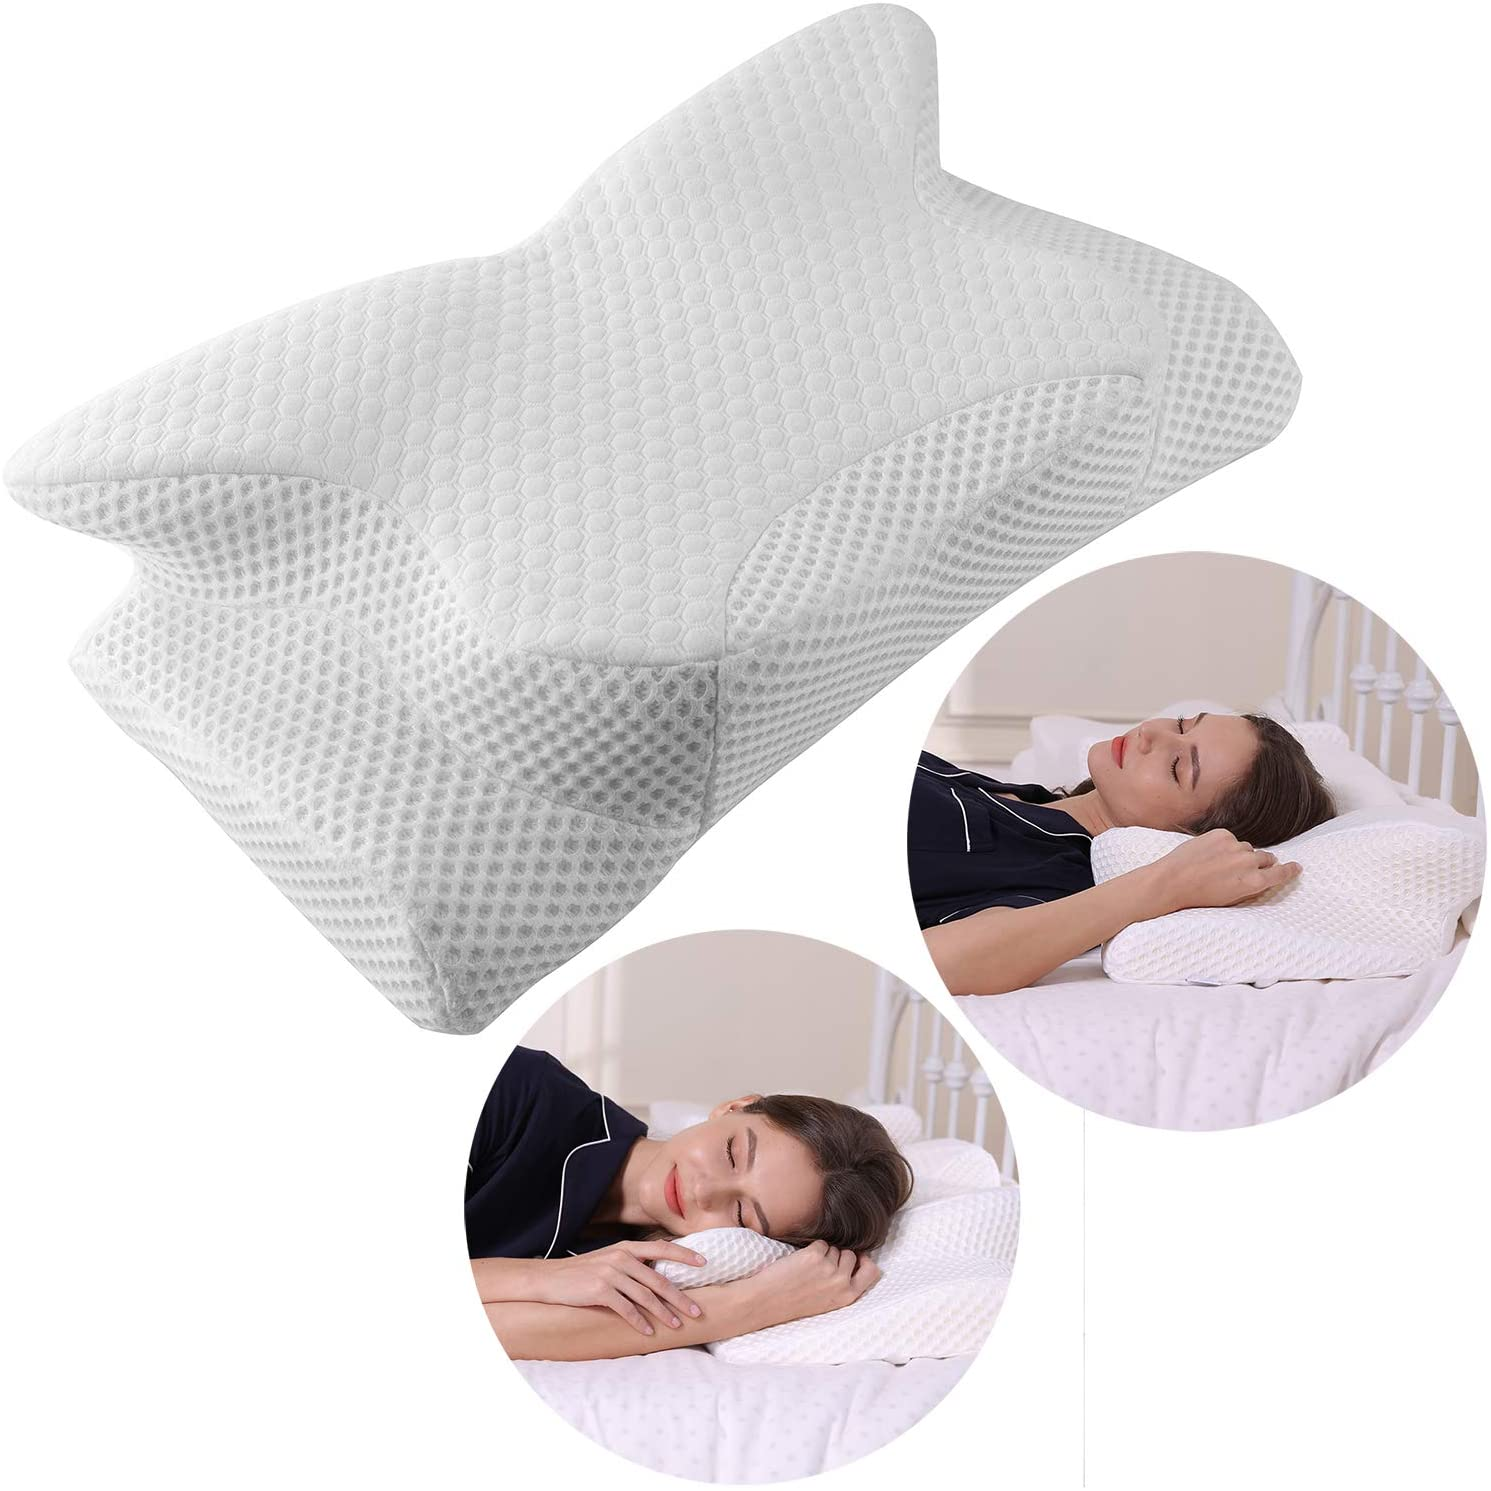 Do you suffer from neck and shoulder pain after waking up? In this article, we review the best pillow to use for neck problems and the best pillow for your posture.